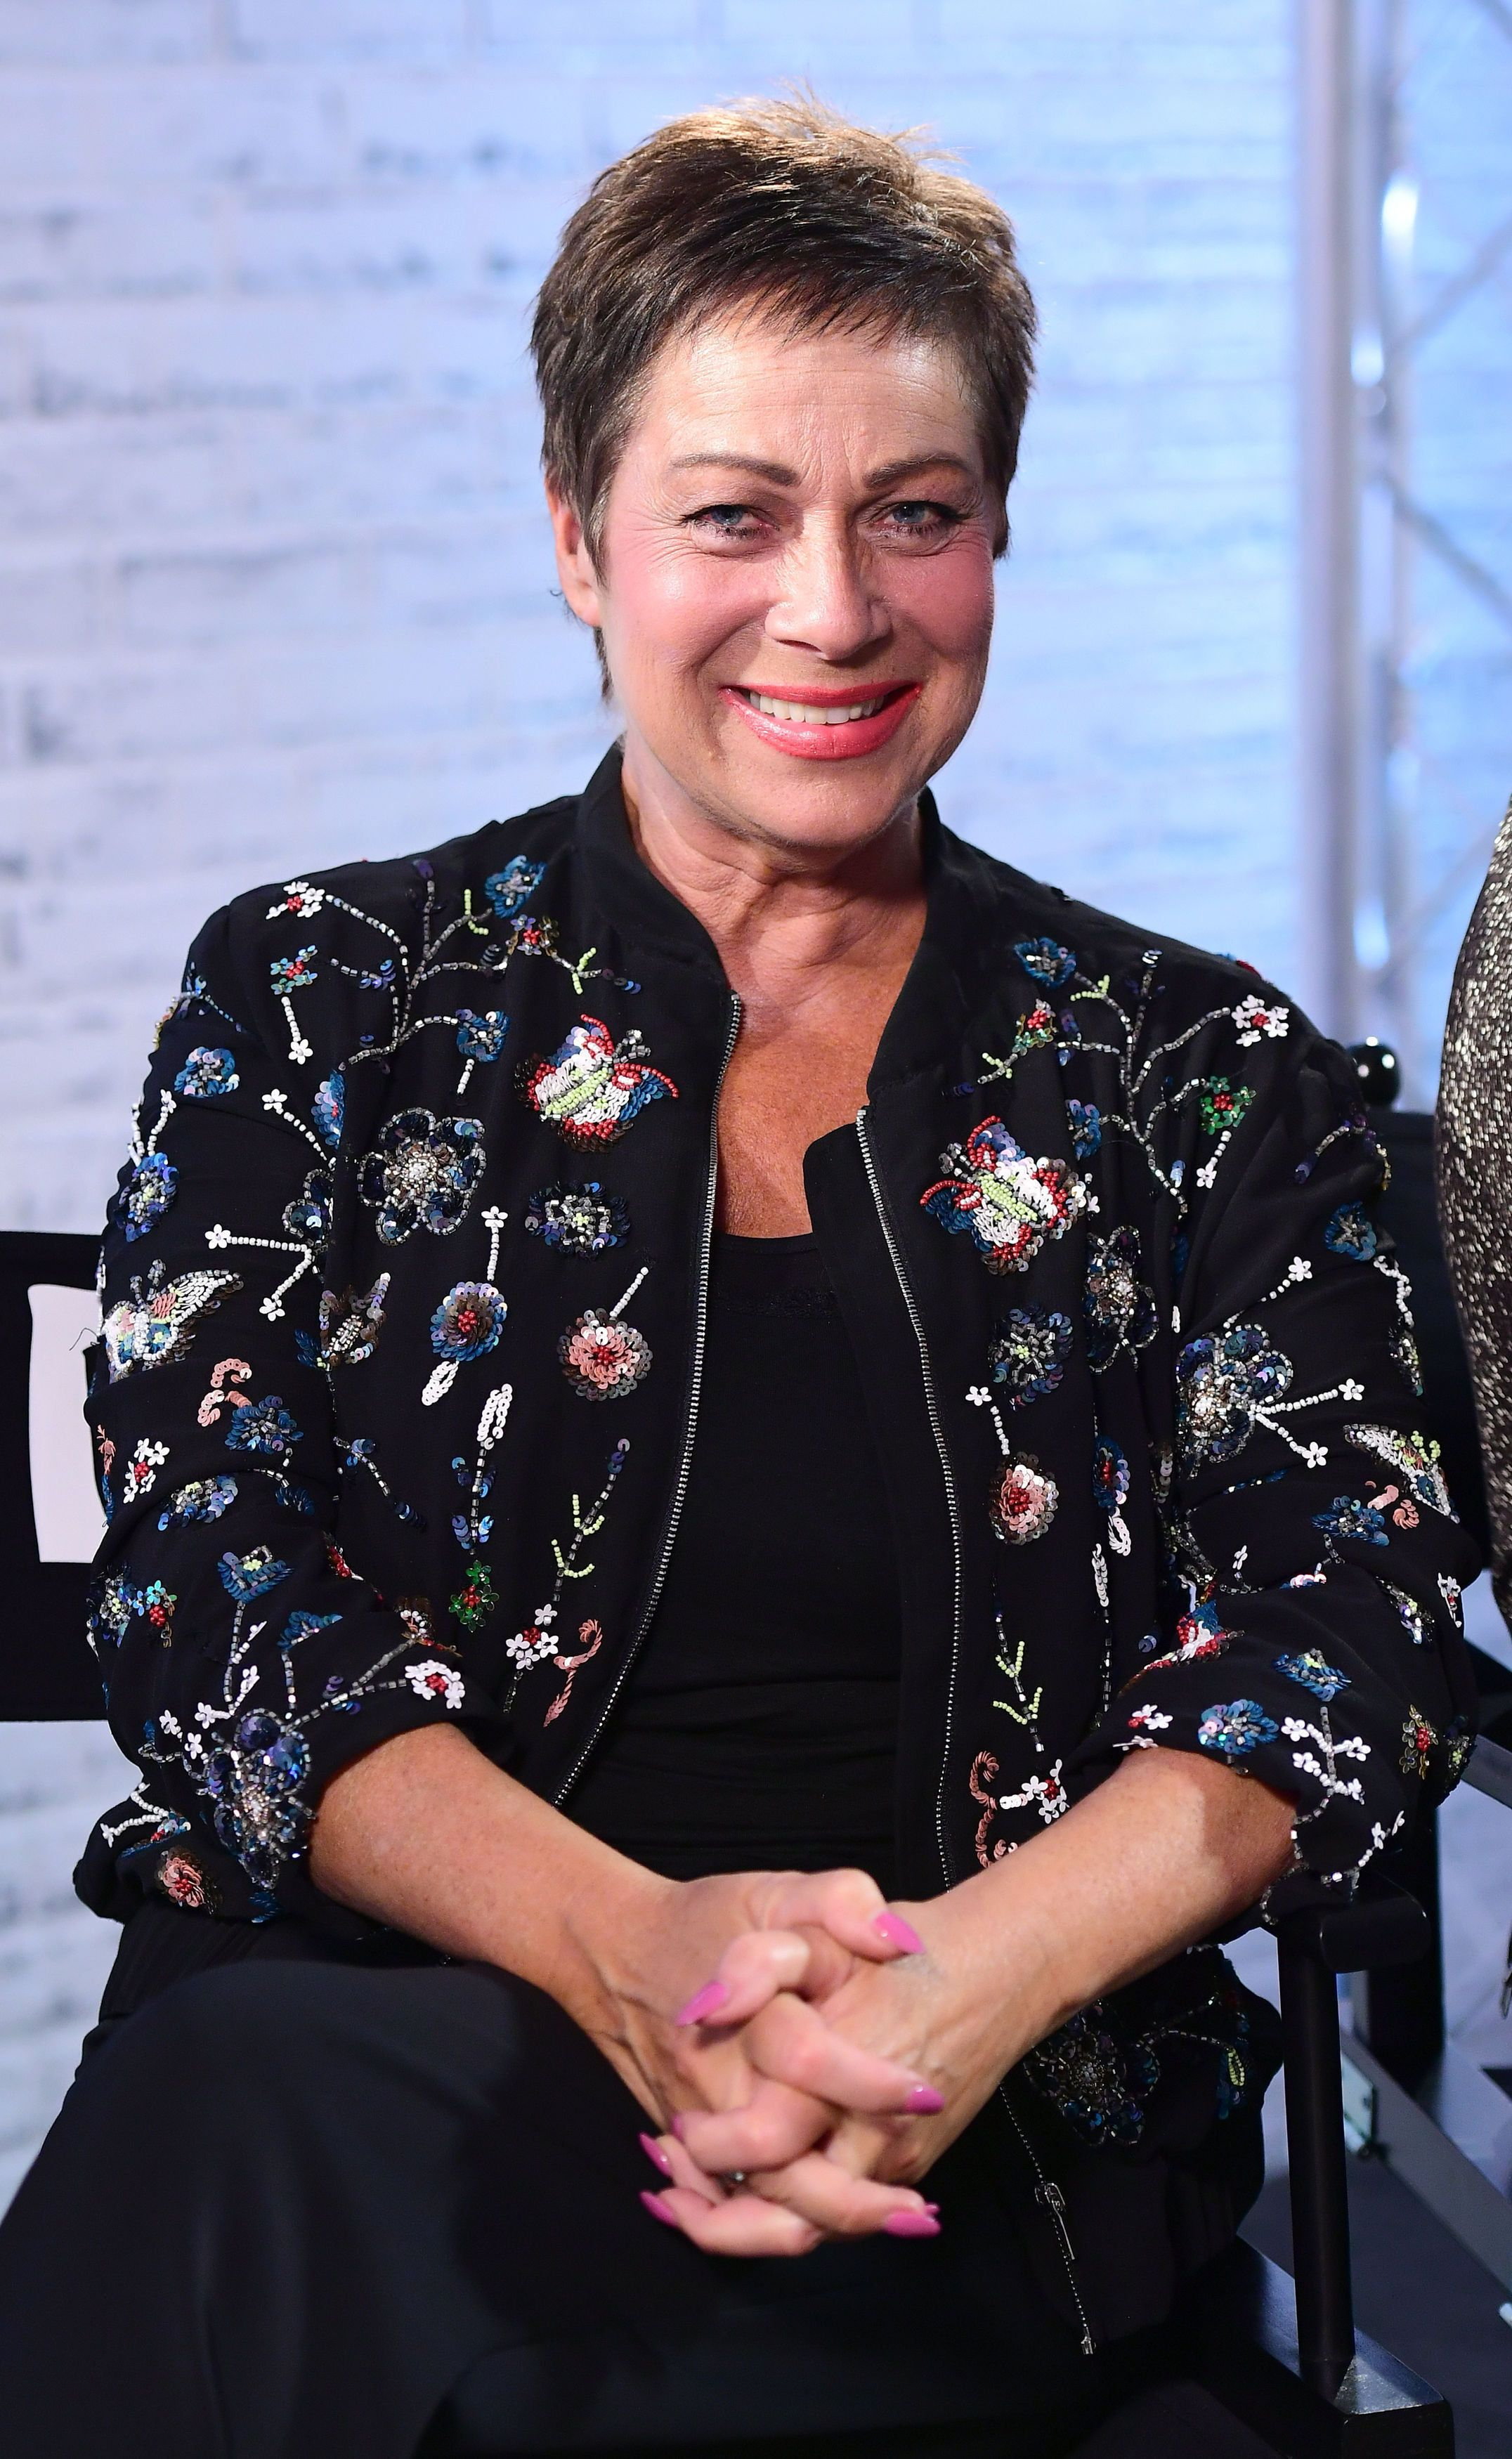 Denise Welch Calls Out Her Former 'Coronation Street' Bosses For Shifting Focus From Older